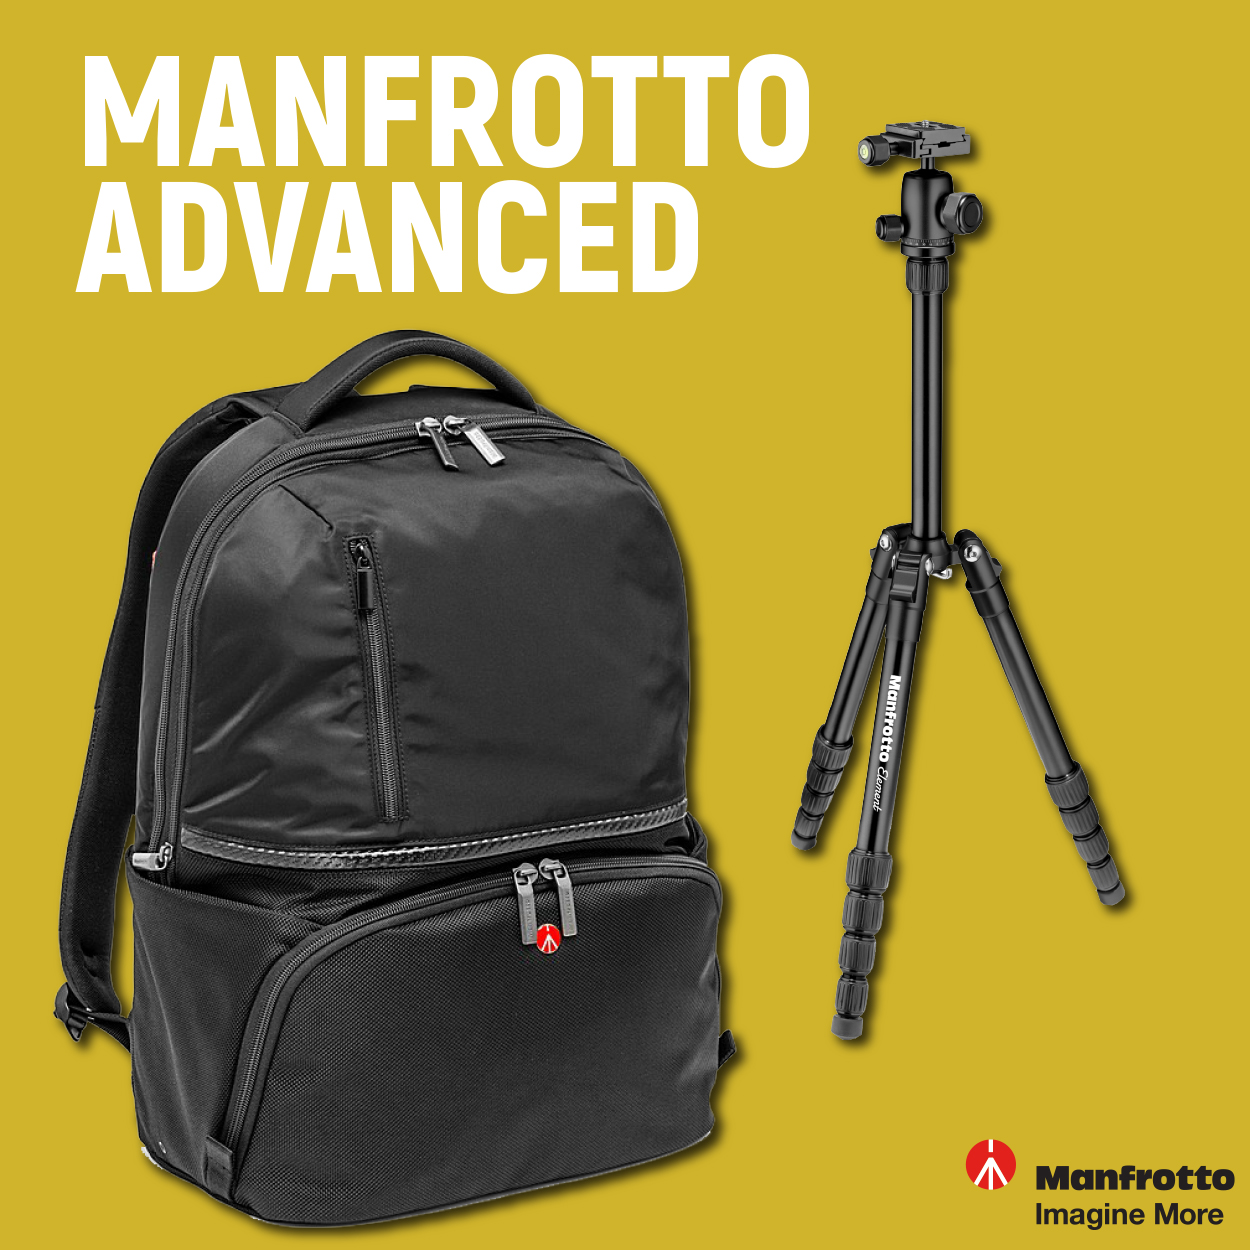 Manfrotto Advanced Active Backpack II and tripod Manfrotto Element Small